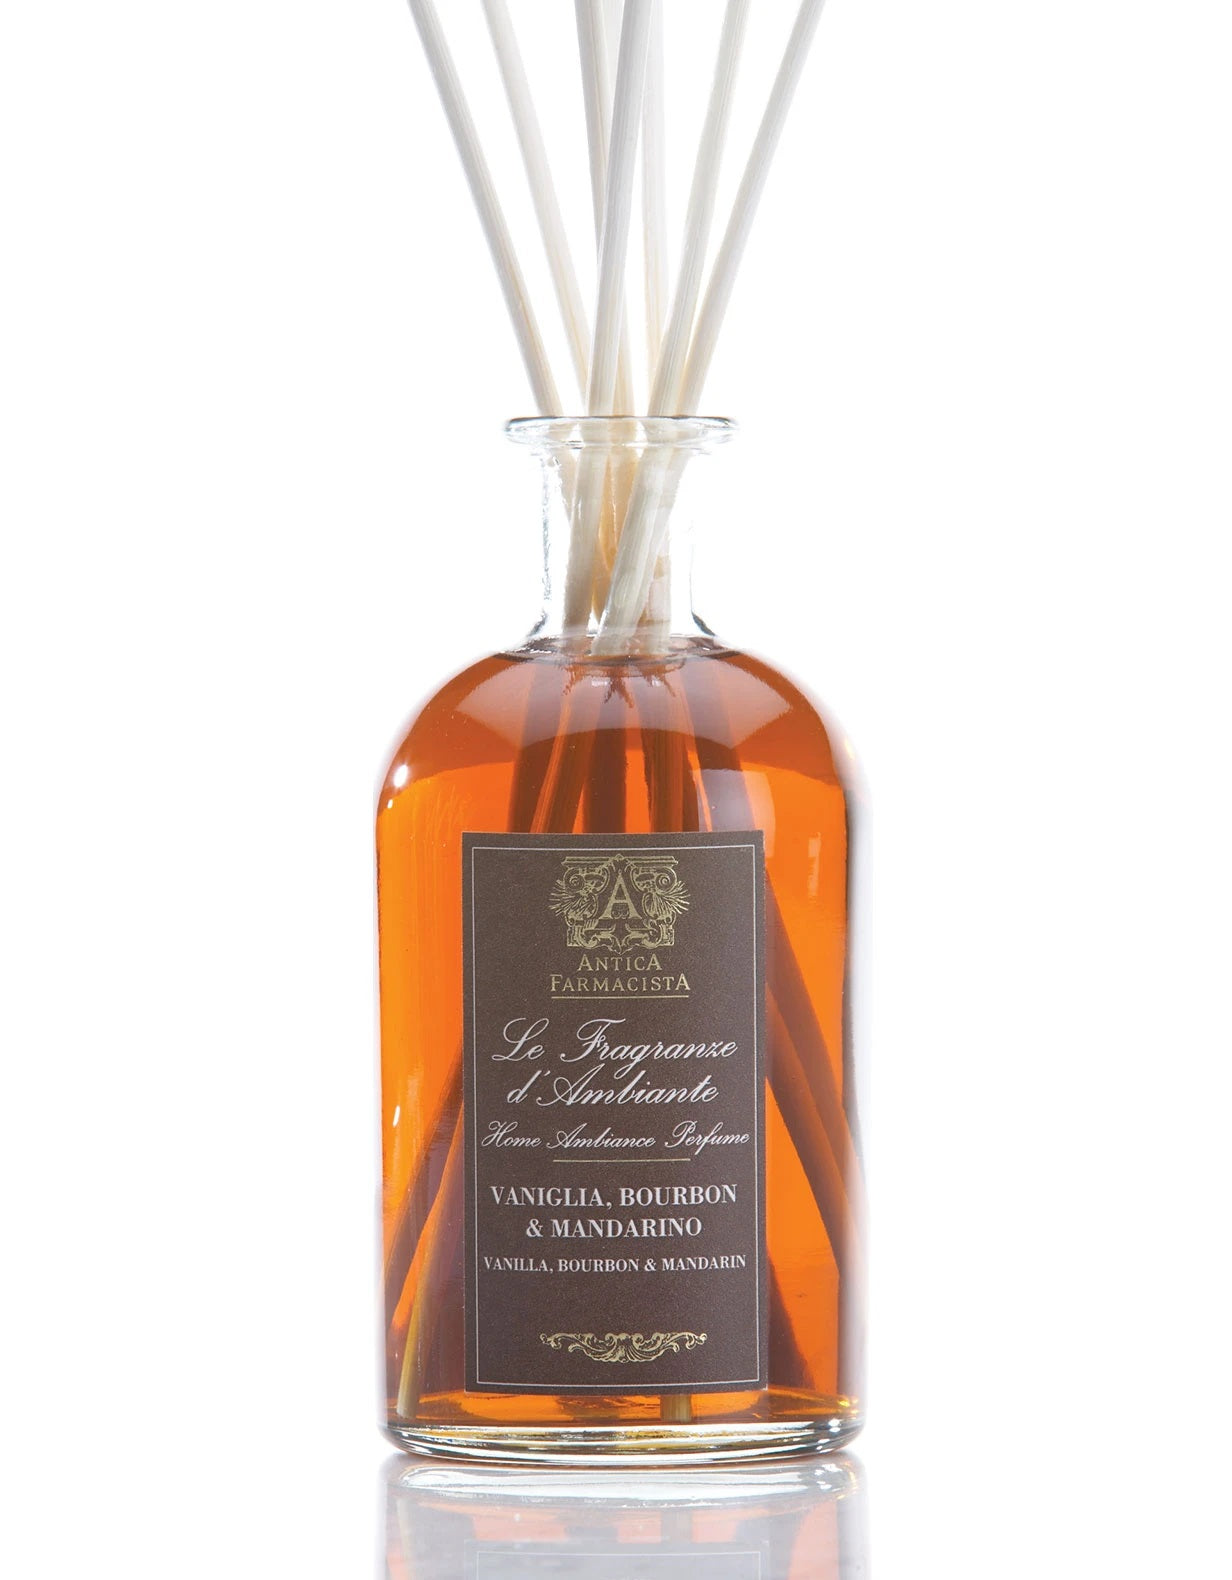 Vanilla, Bourbon & Mandarin 250 ml Room Diffuser by Antica Farmacista